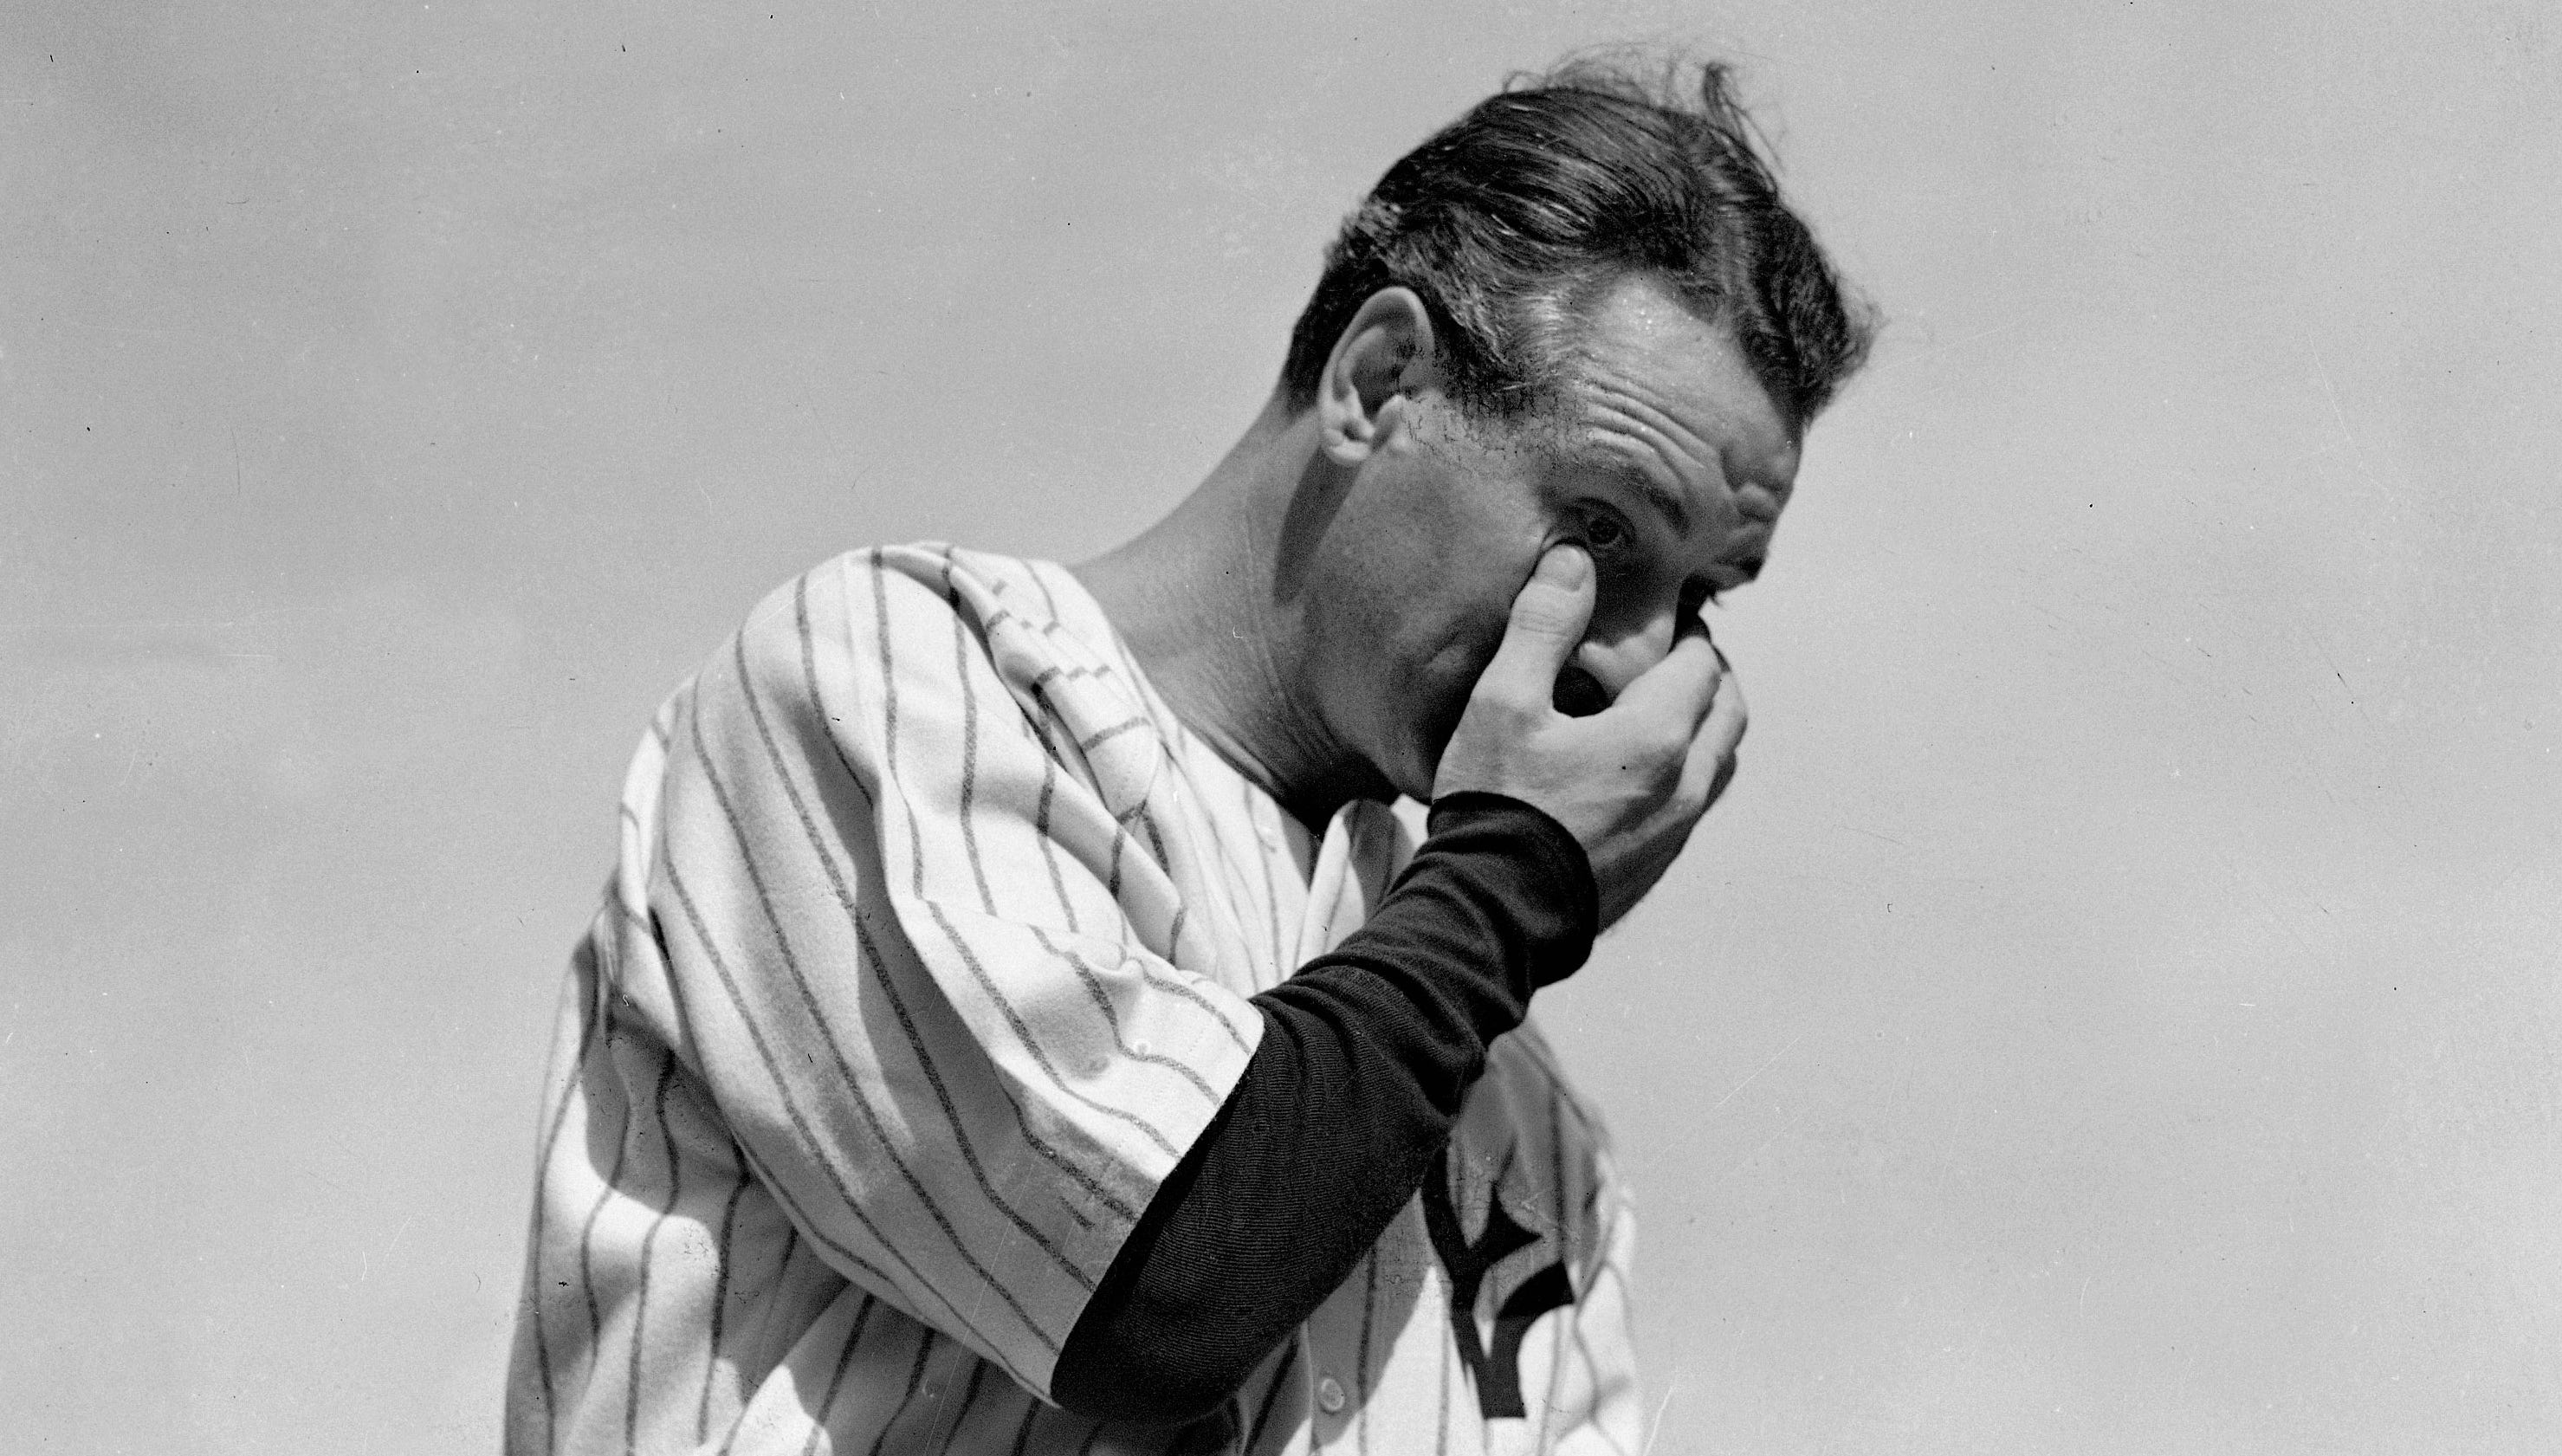 75 years after Gehrig speech, slow progress treating ALS